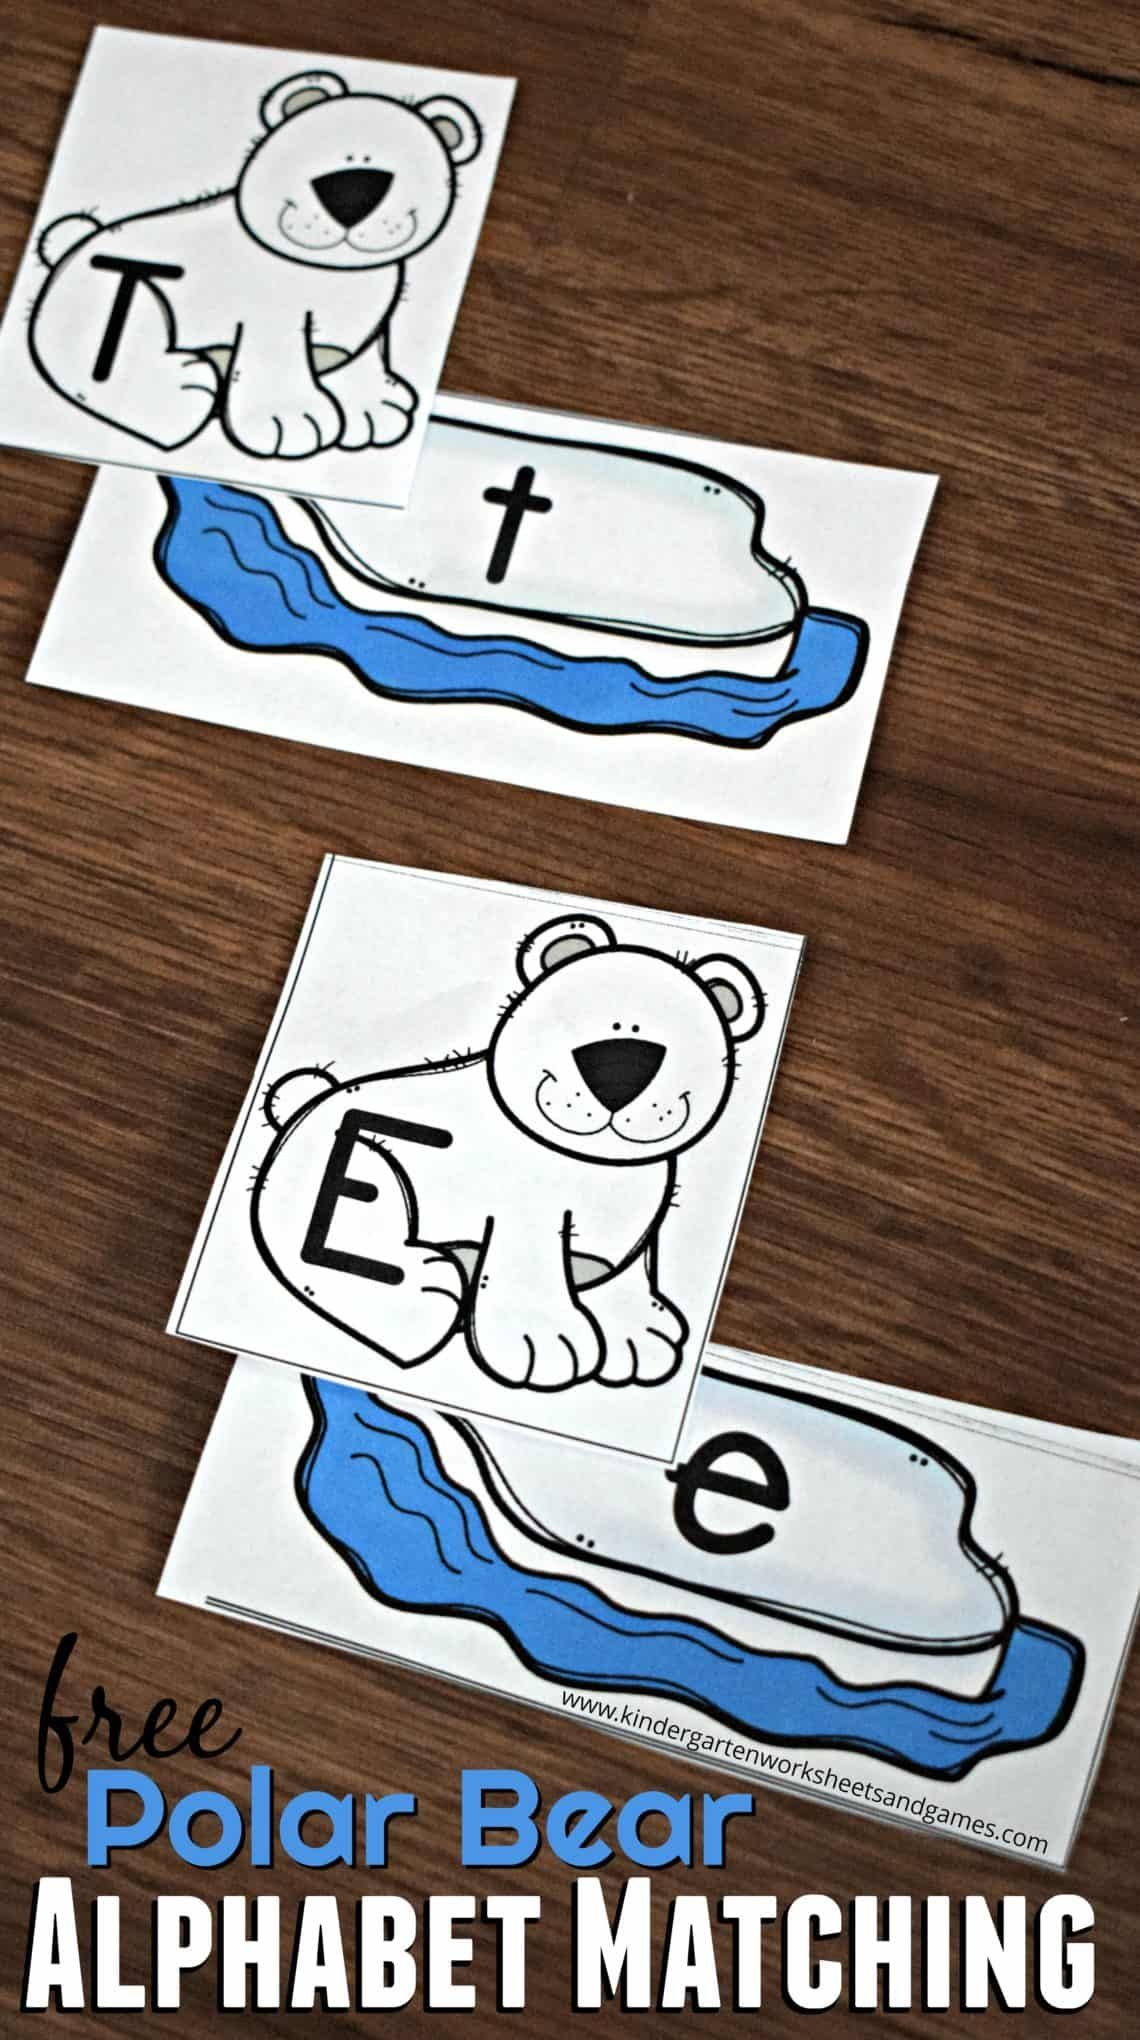 Polar Bear Alphabet Matching